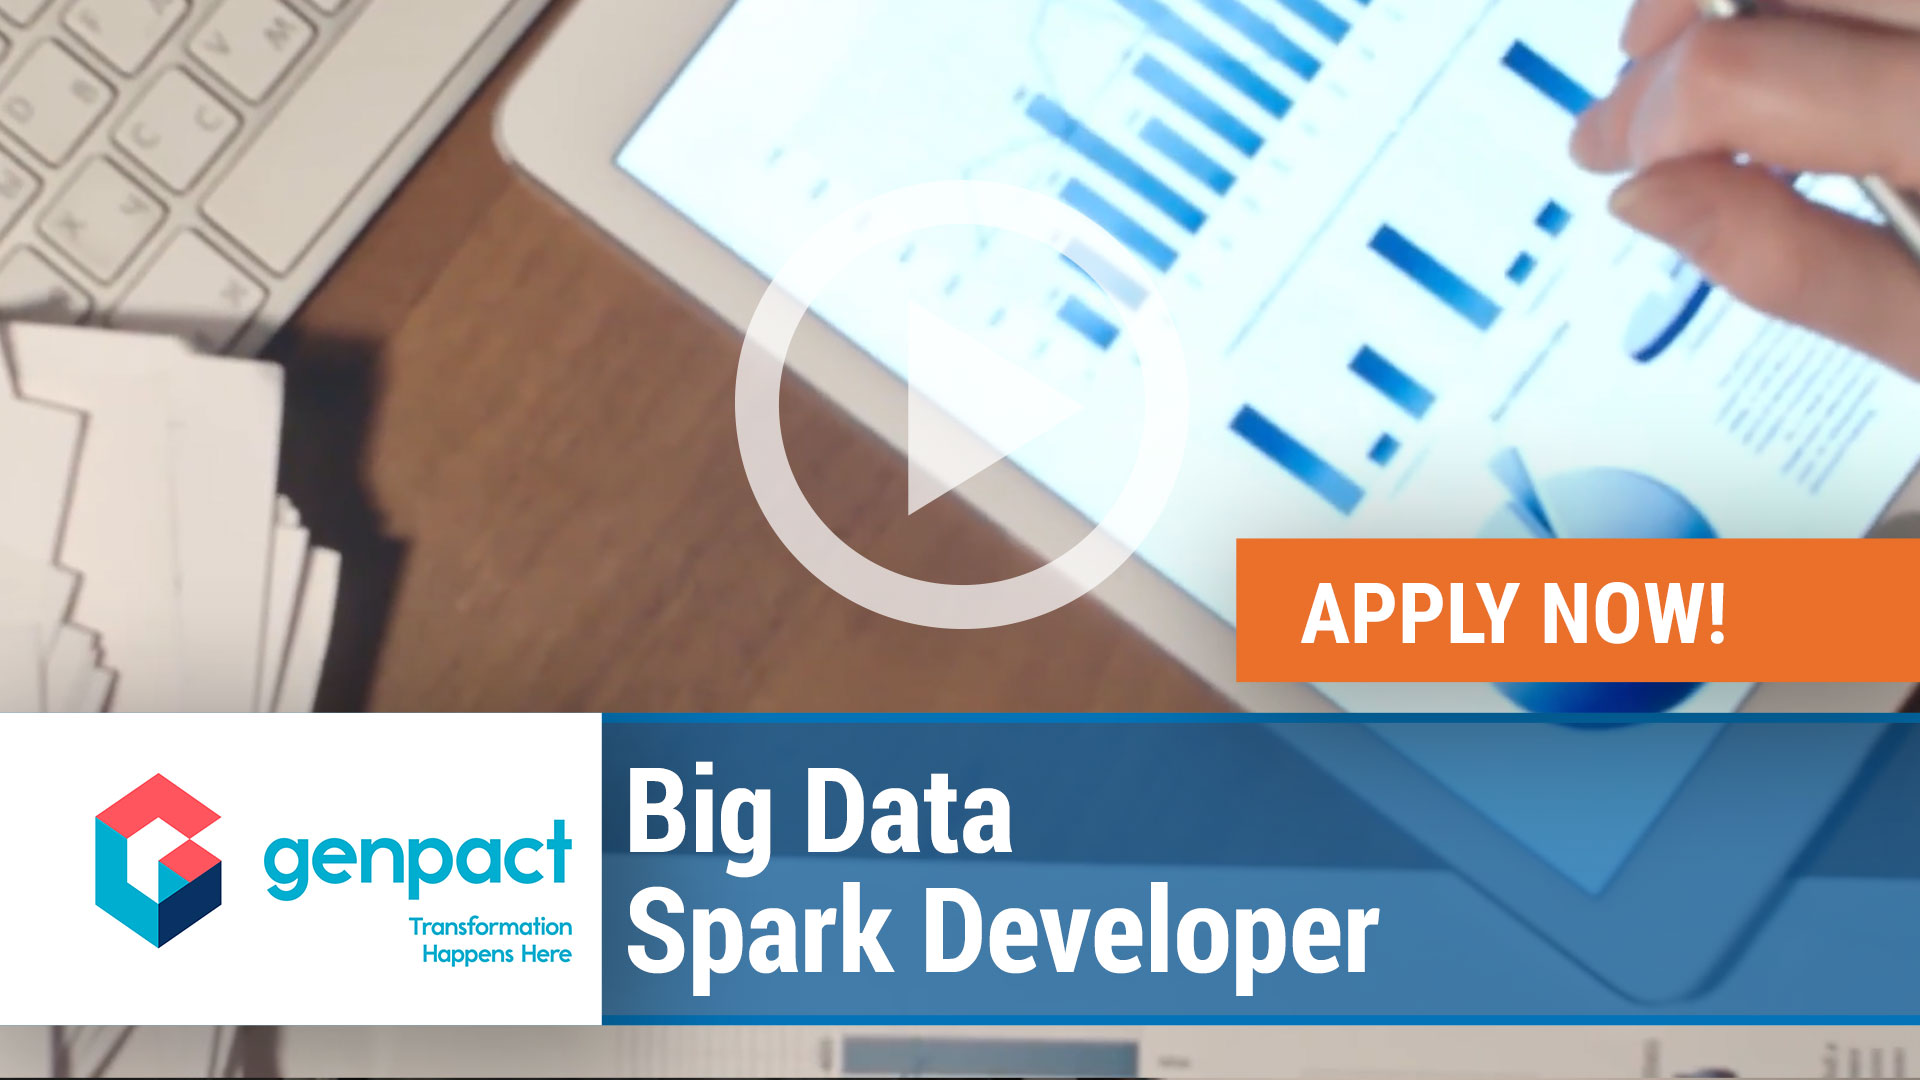 Watch our careers video for available job opening Big Data Spark Developer in Reston, VA, USA